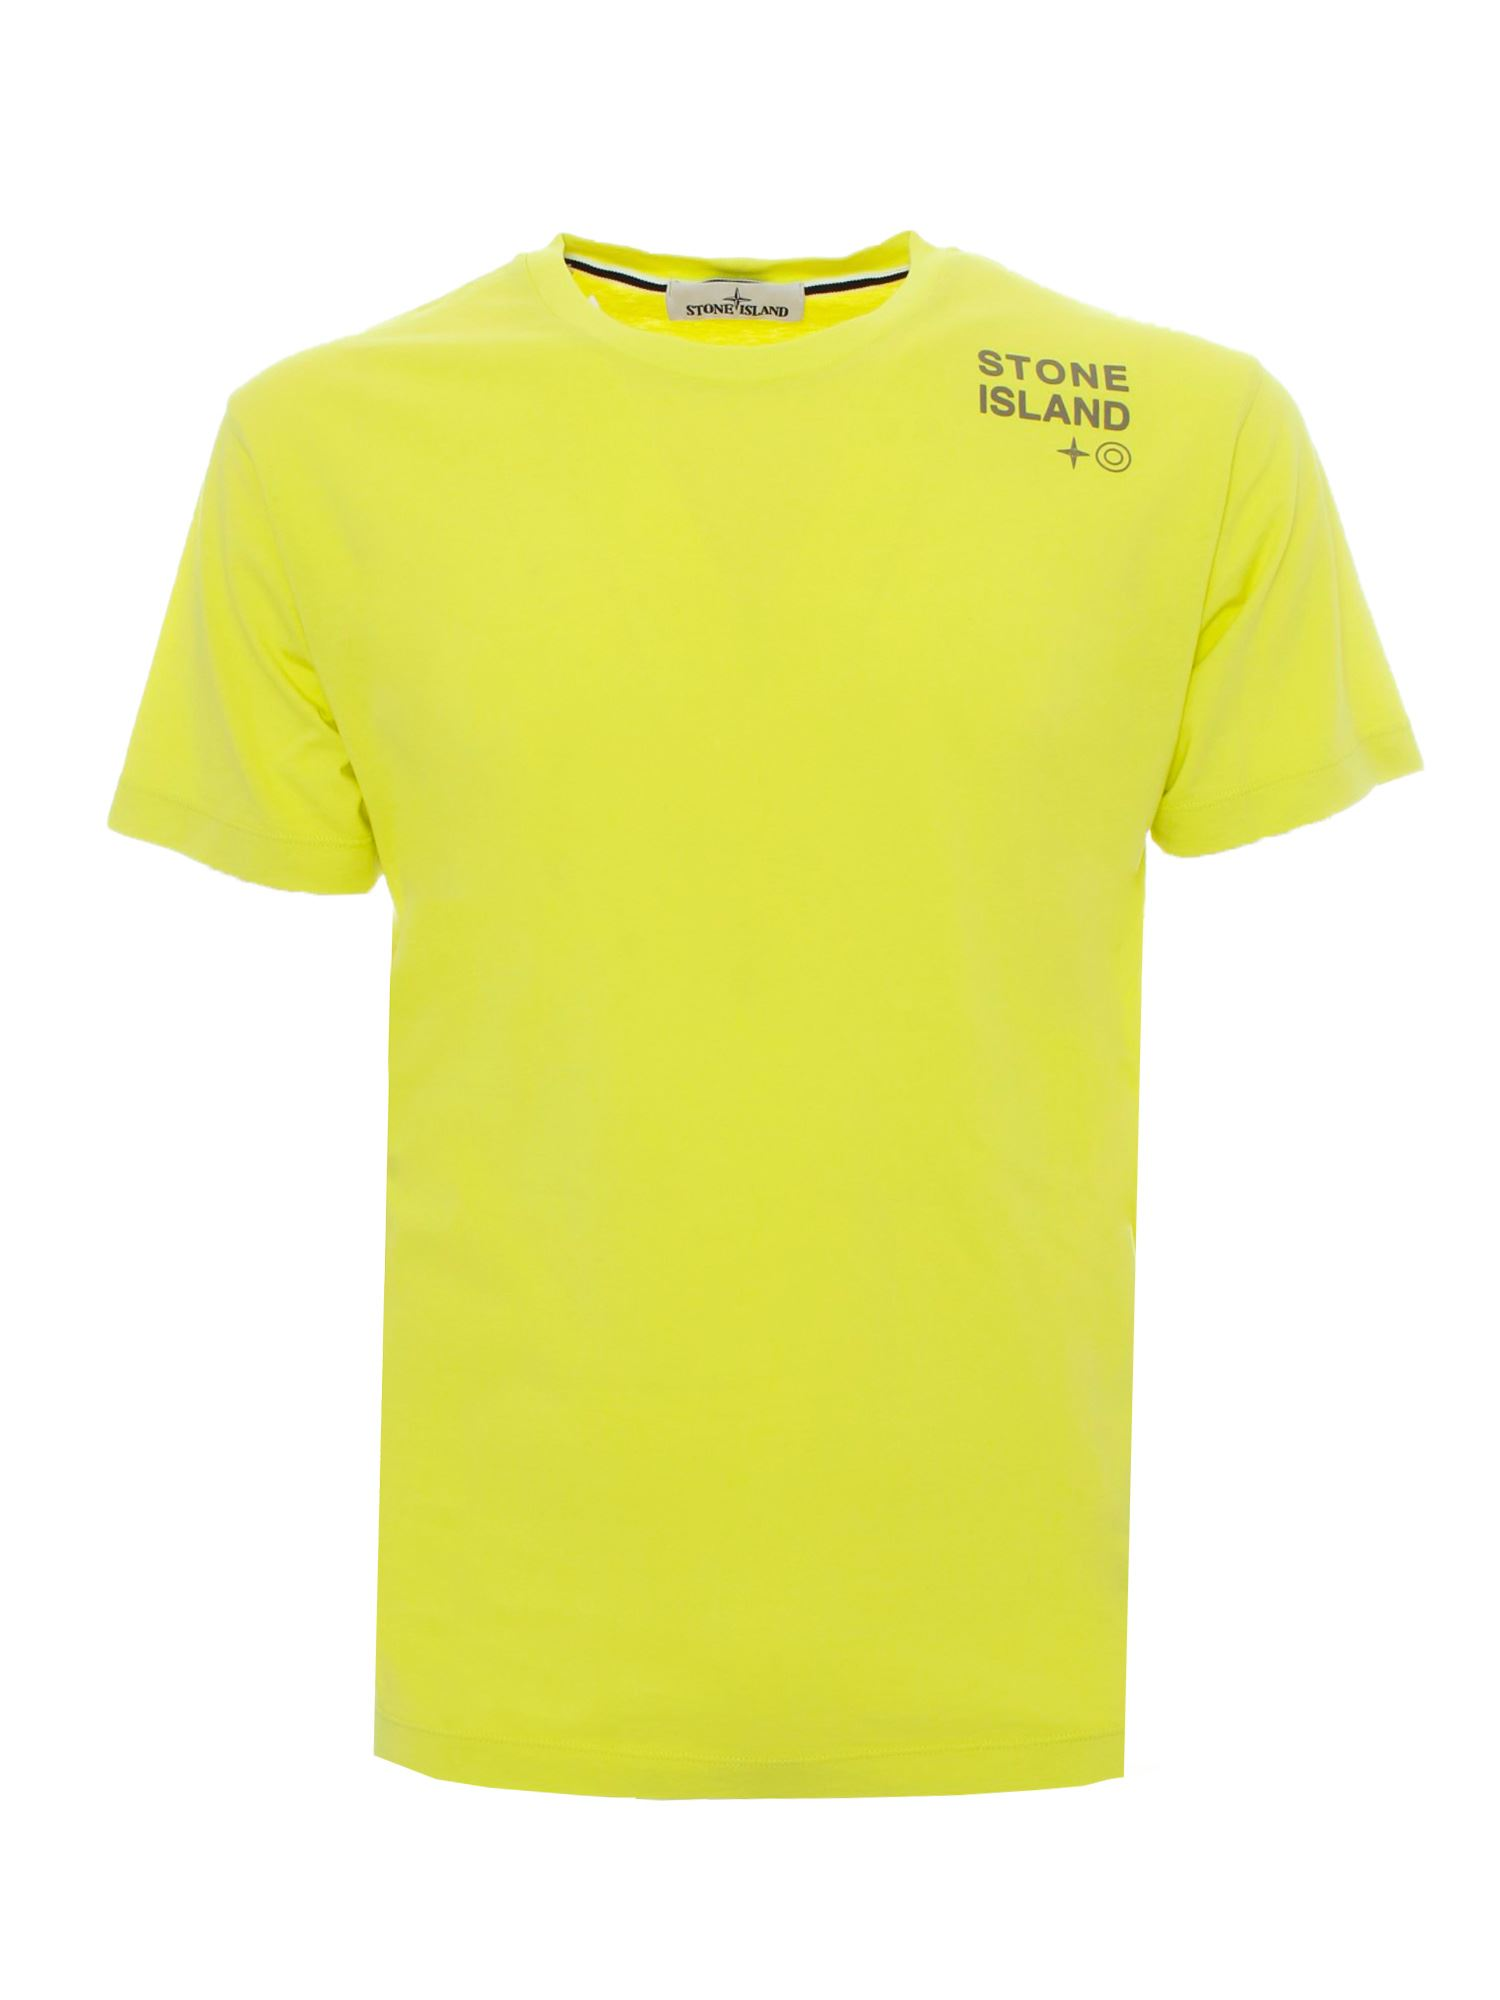 Stone Island LOGO LETTERING T-SHIRT IN YELLOW